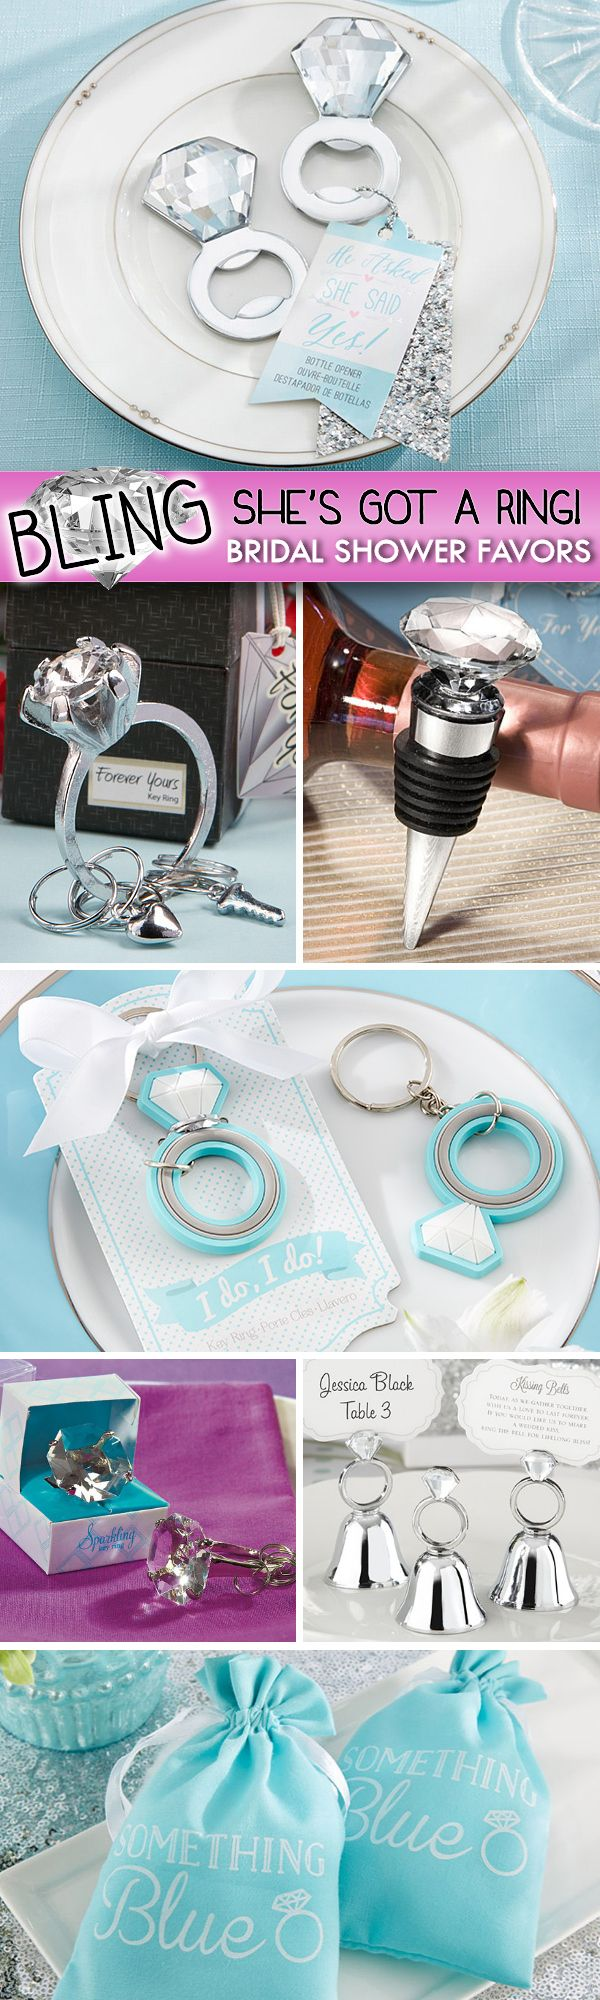 Fun 'Bling She's Got A Ring' Bridal Shower Favor Ideas